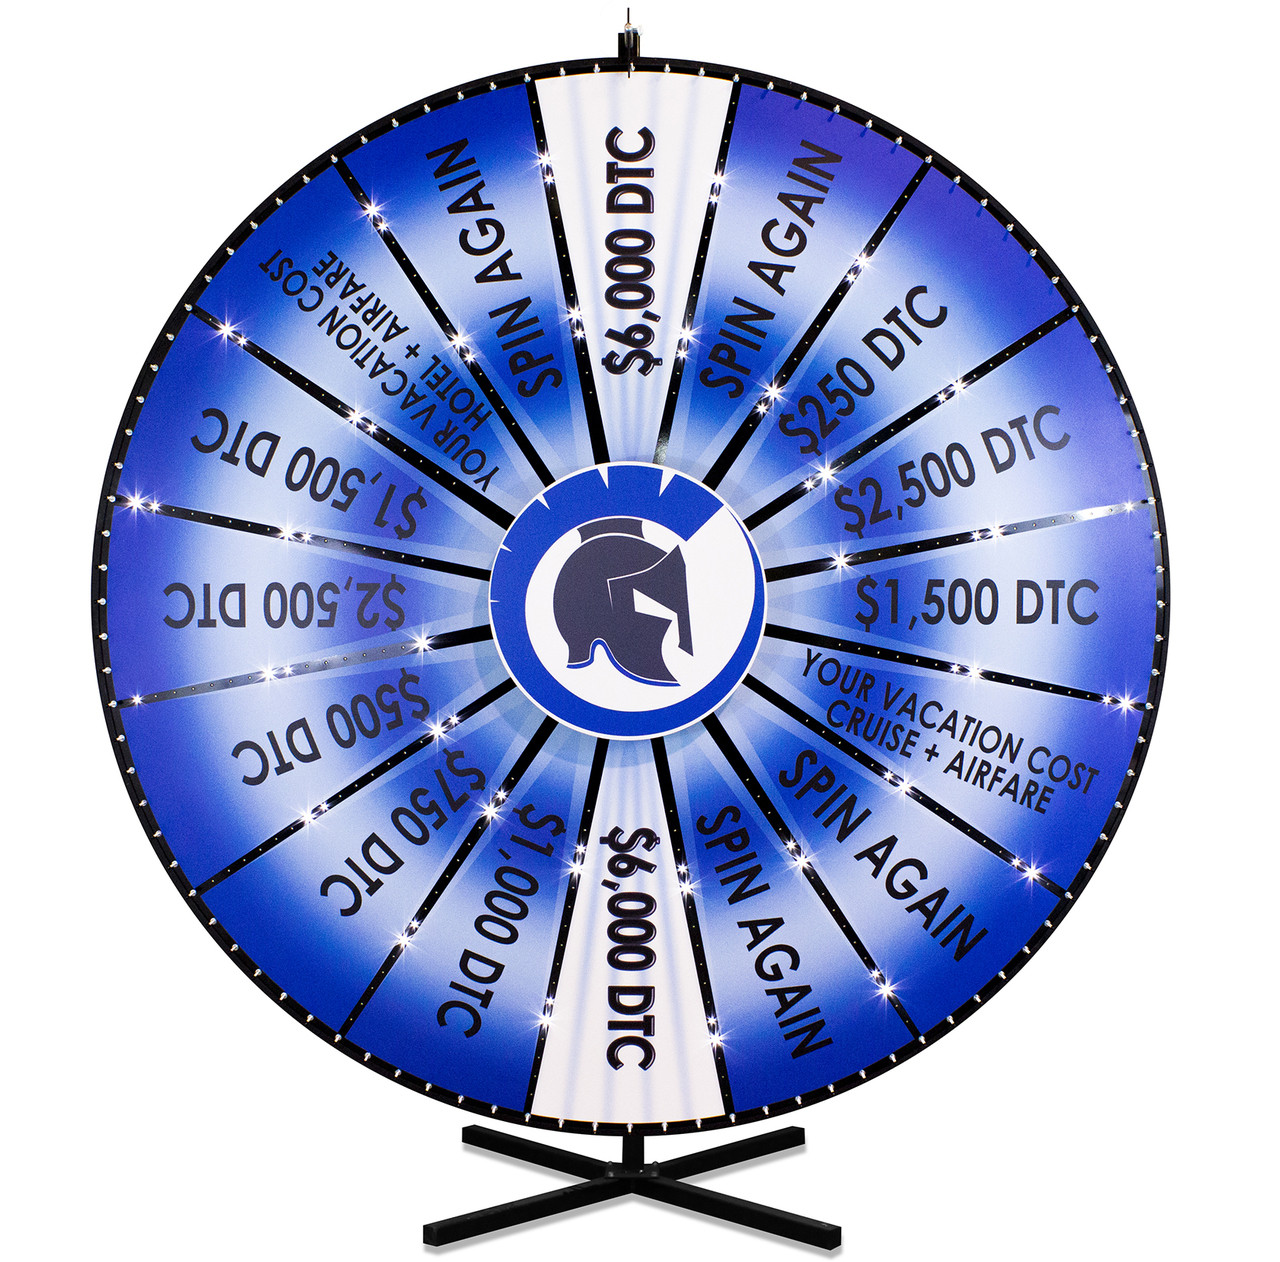 96 Inch Custom Lighted Prize Wheel AC Power - Spinning Designs